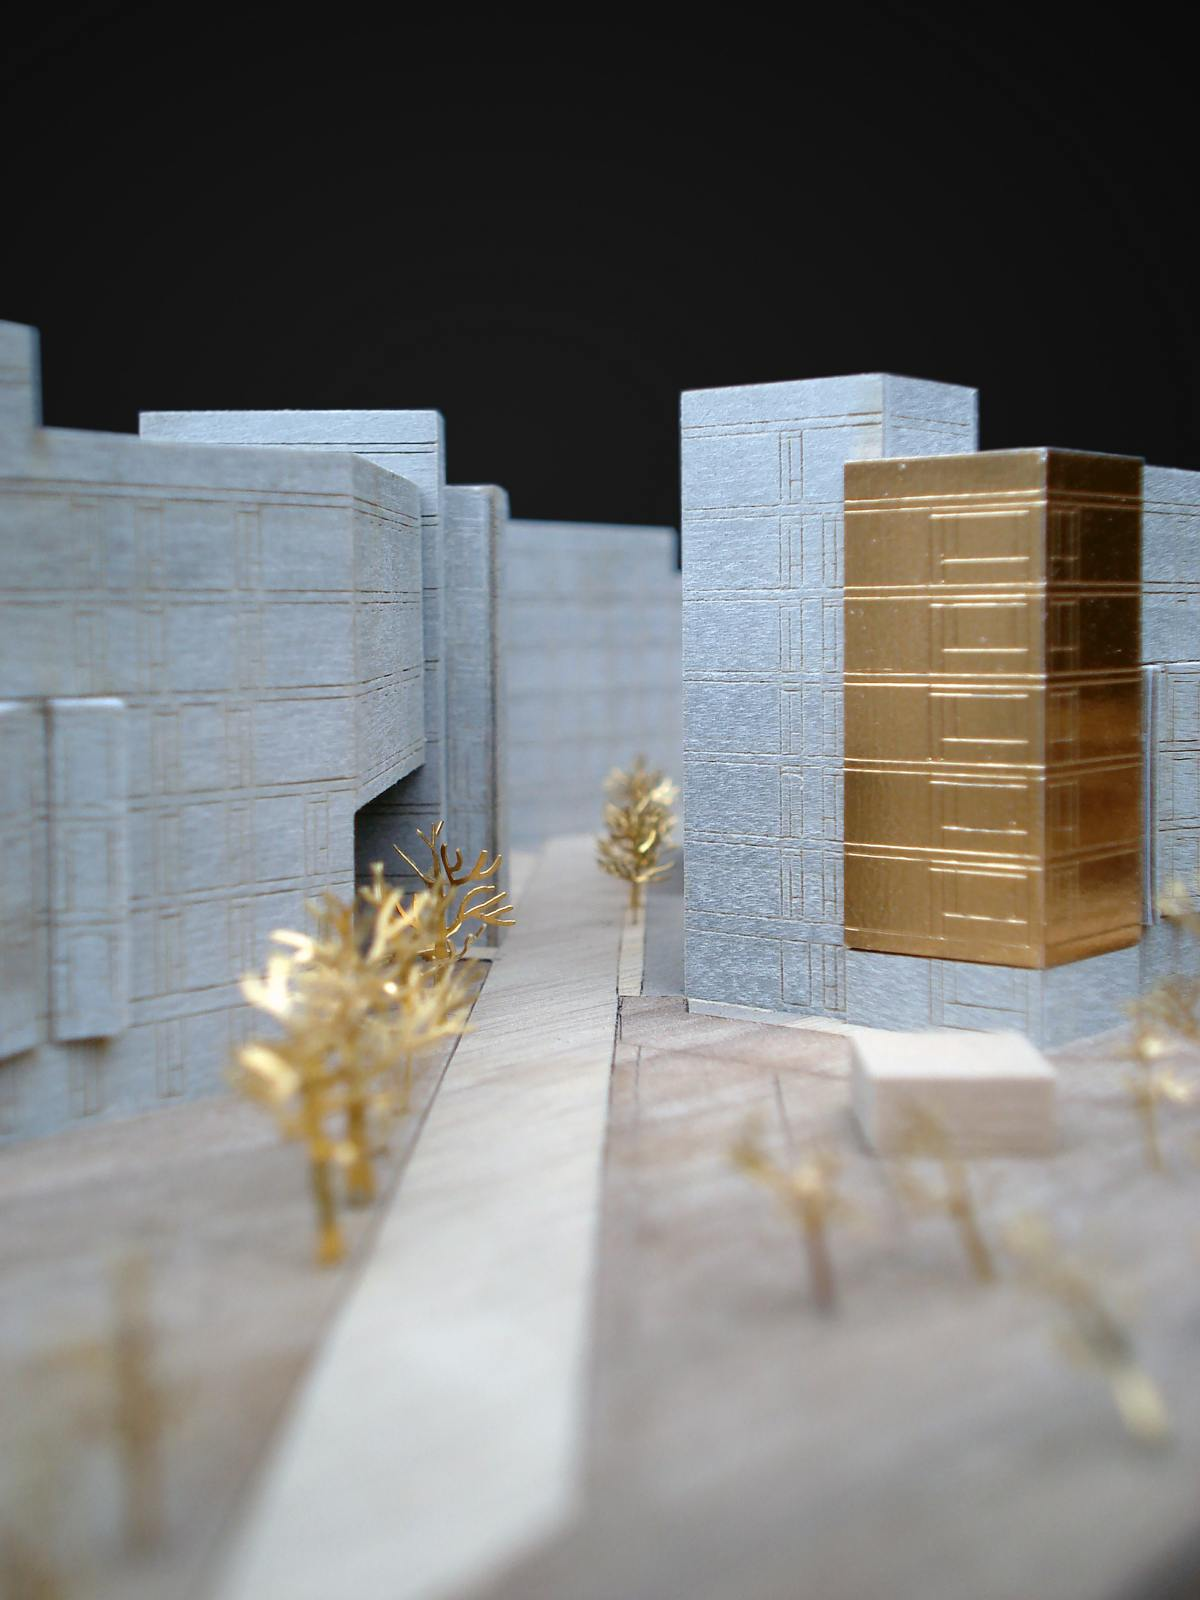 LSI-Architects_UEA-Blackdale-Model_03